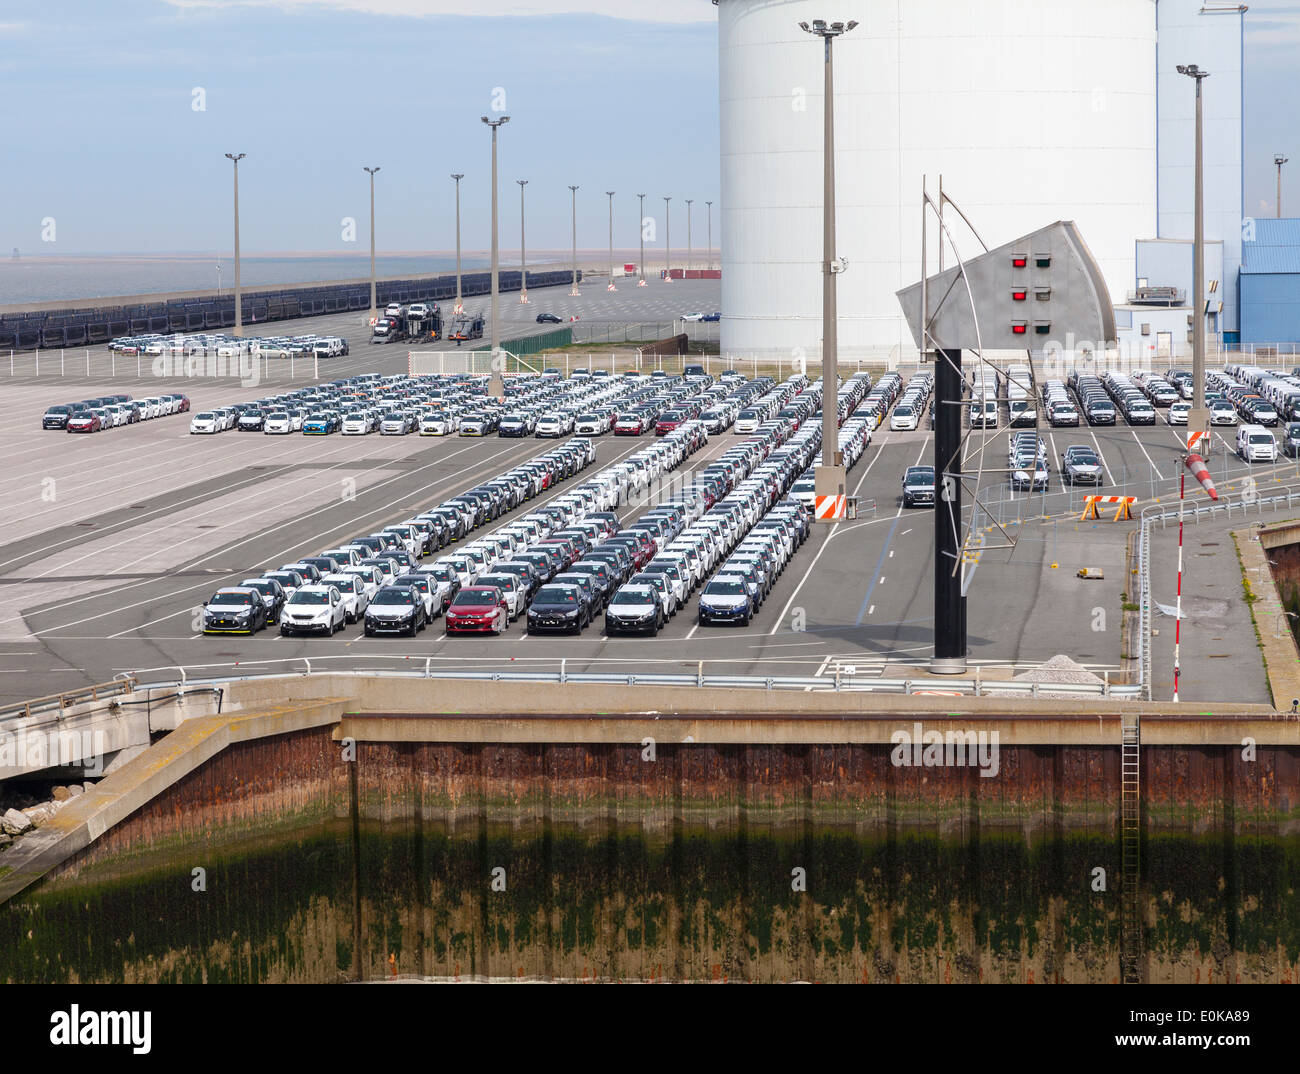 Cars ready for export - Stock Image